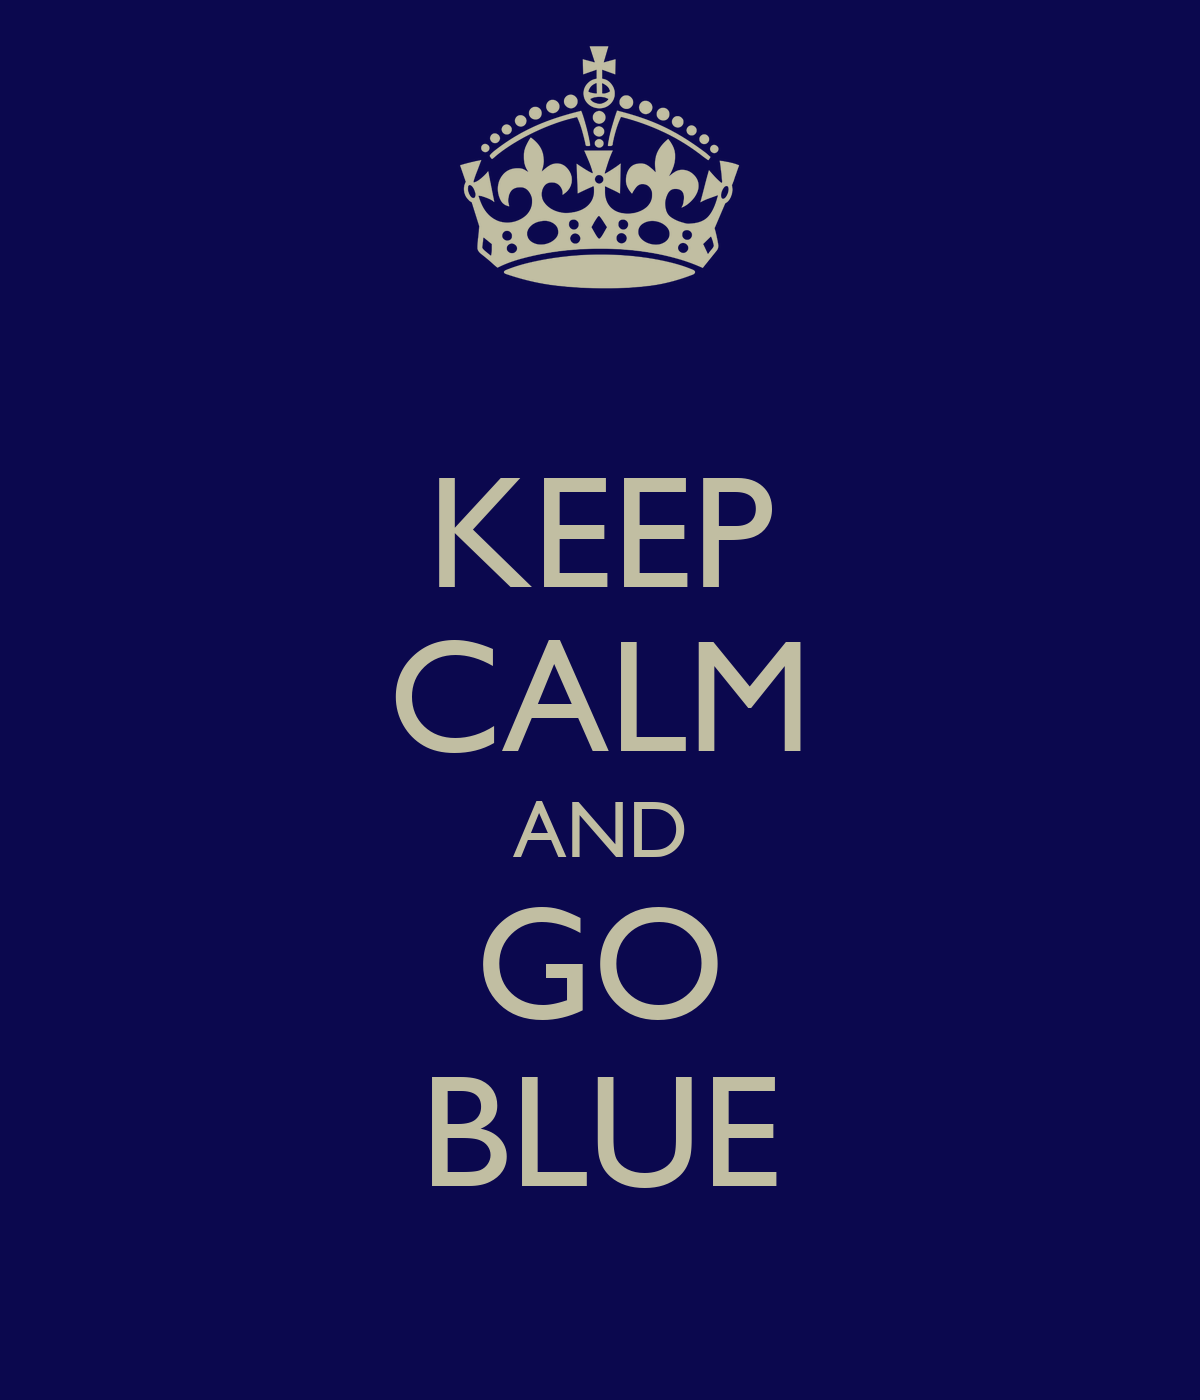 keep-calm-and-go-blue-56.png